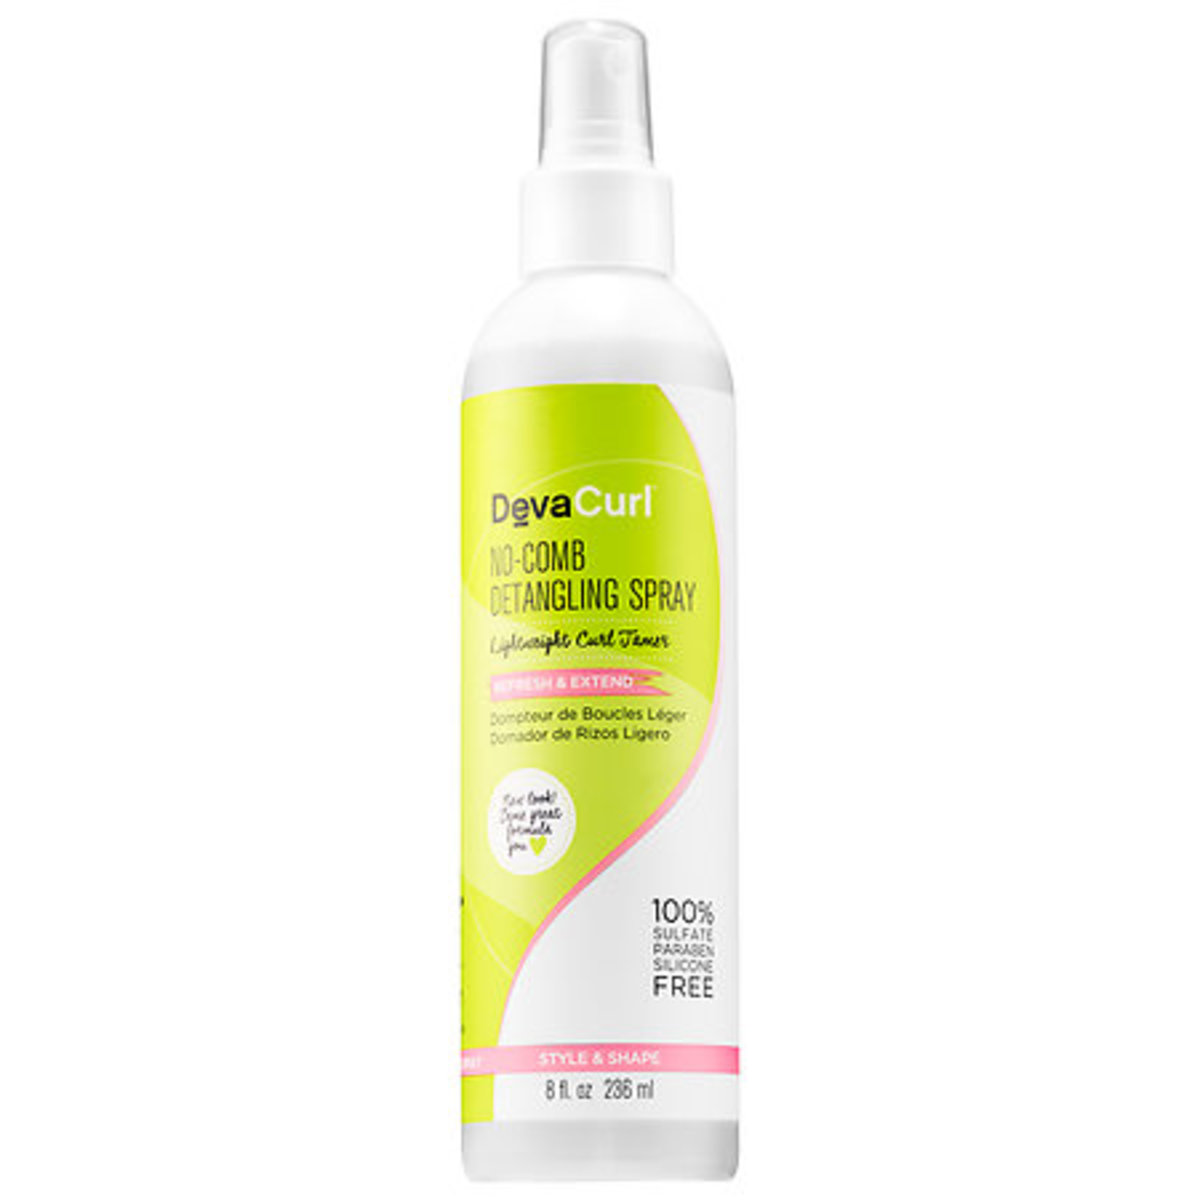 DevaCurl No-Comb Detangling Spray, $20, available at Sephora.